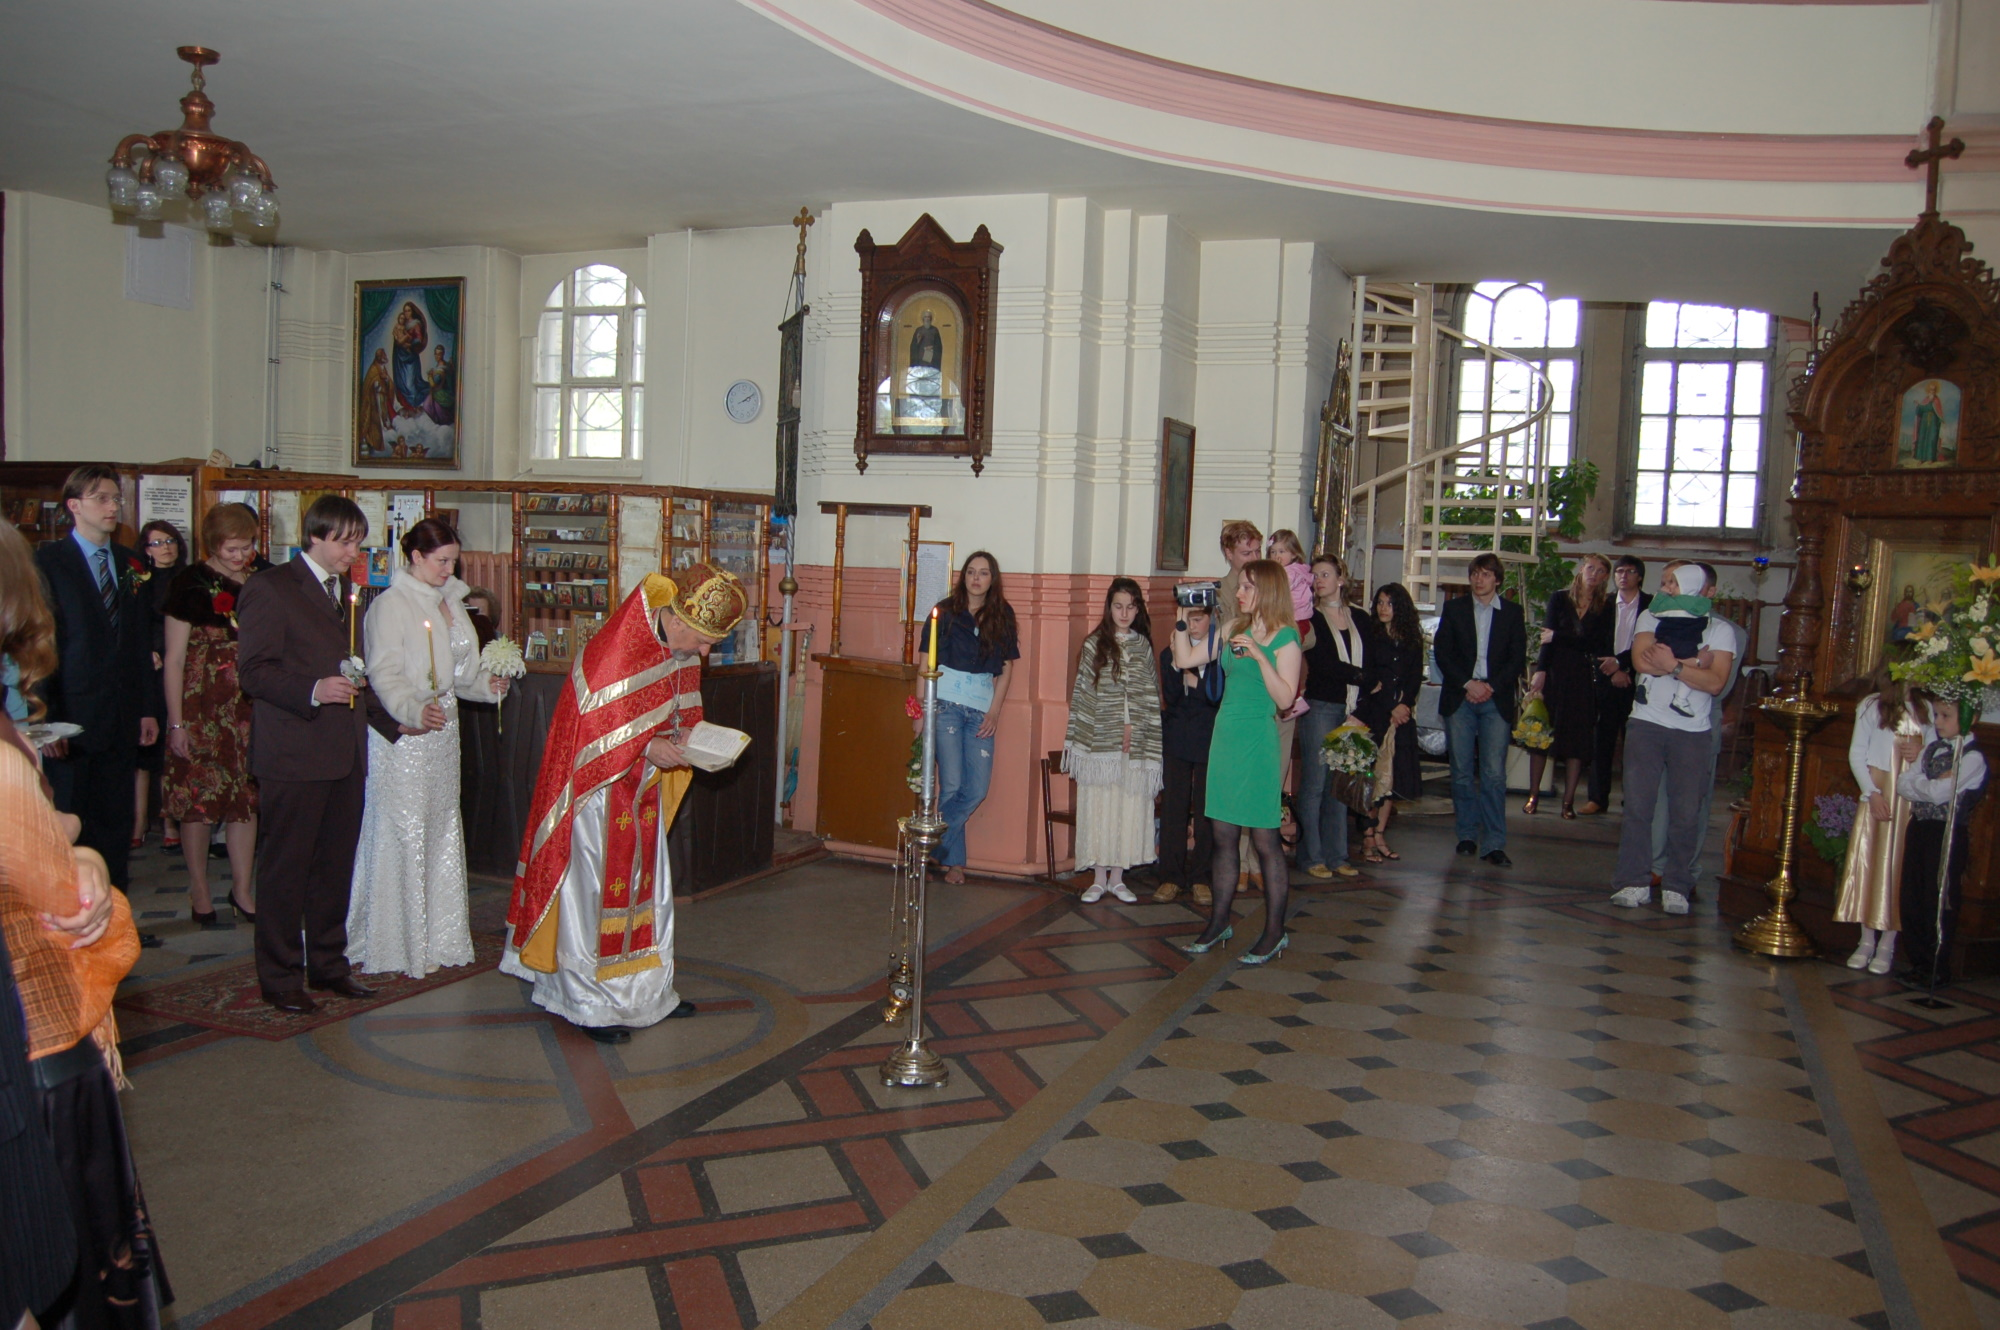 The priest bows before the altar